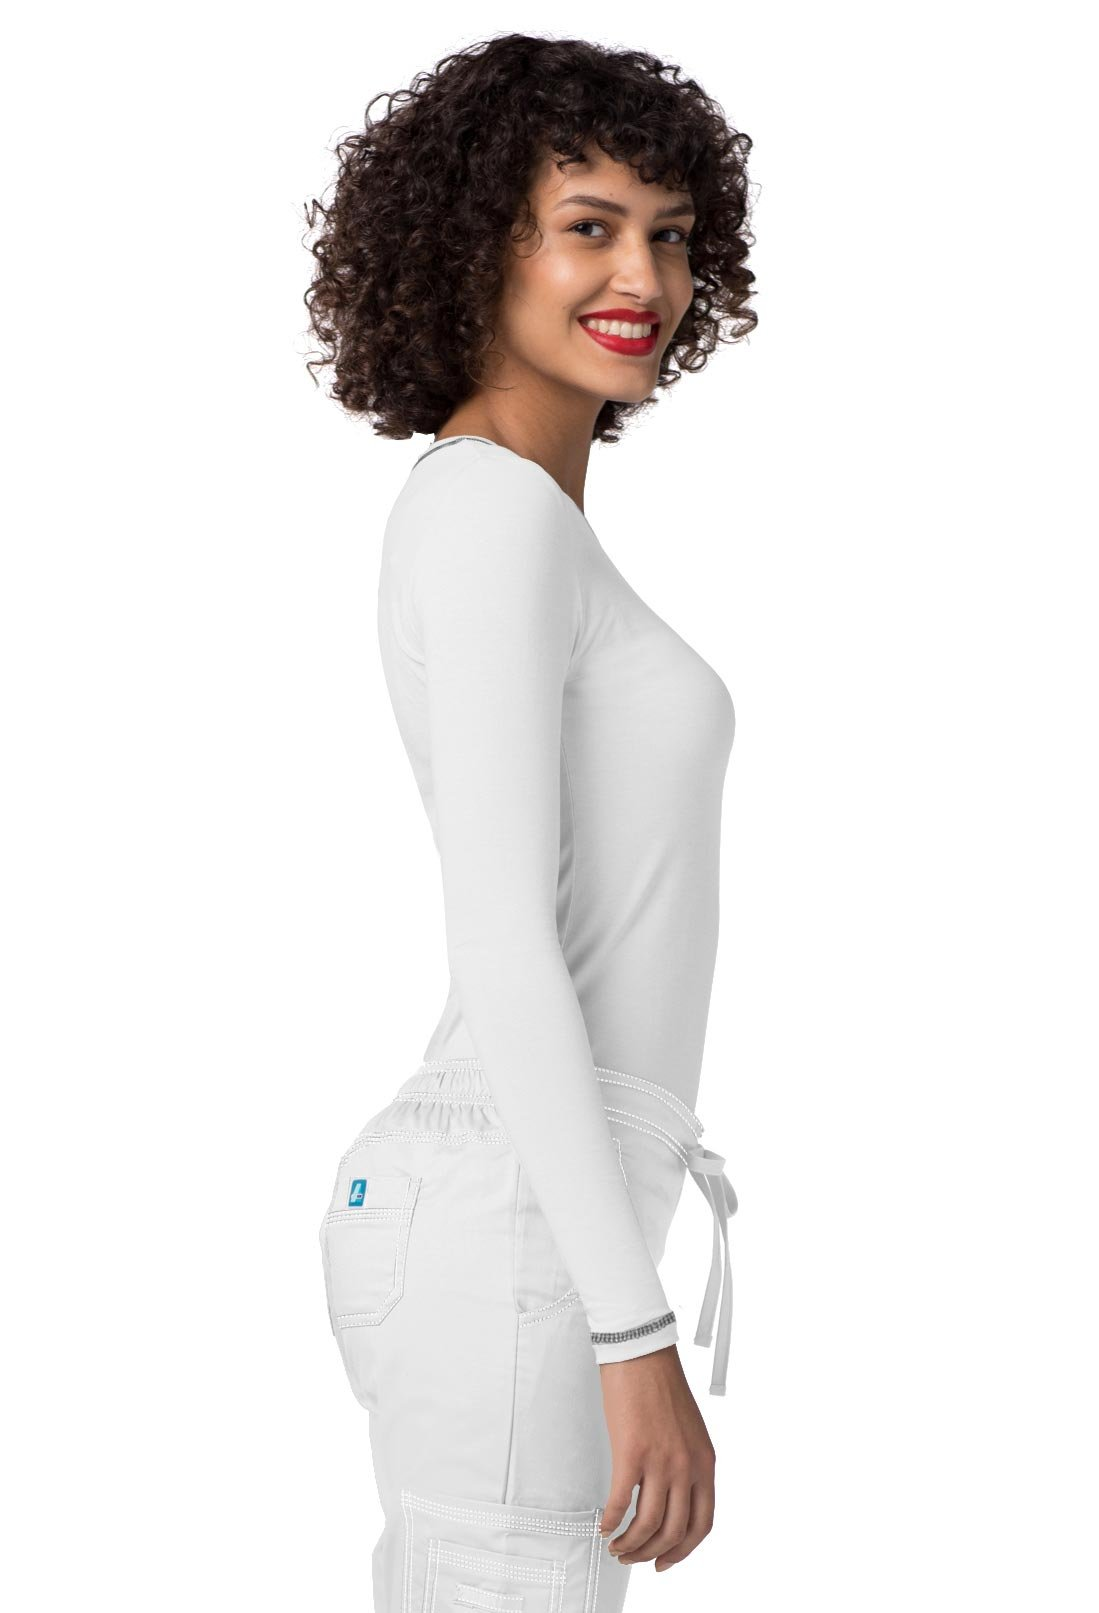 Adar Womens Comfort Long Sleeve Fitted T-Shirt Underscrub Tee- 3400 - White - L by Adar Uniforms (Image #5)